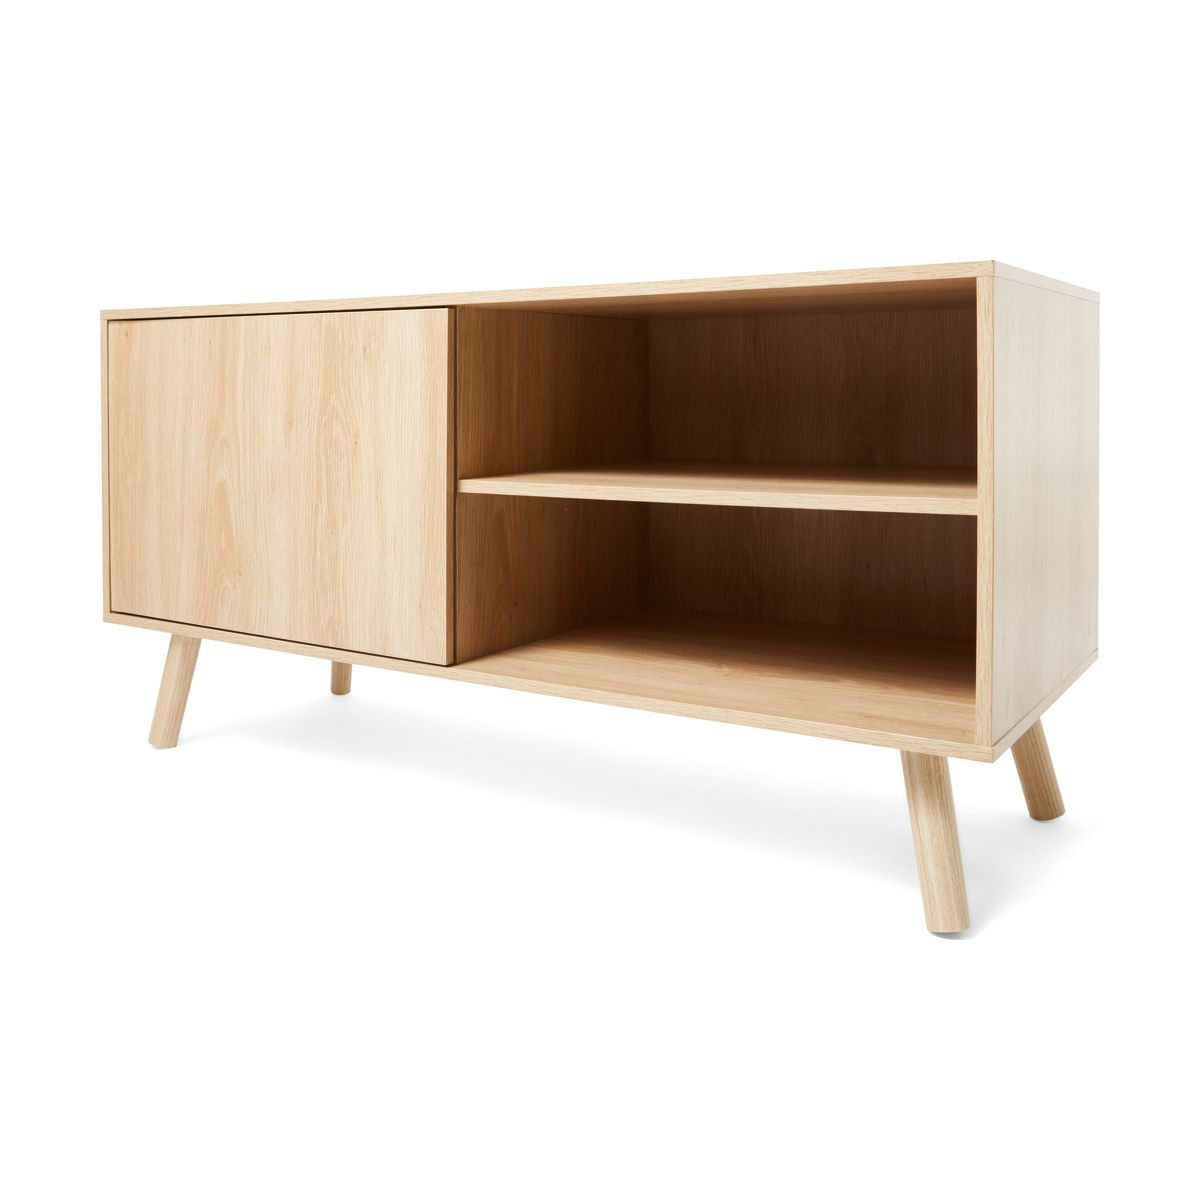 Kmart Oak Sideboard